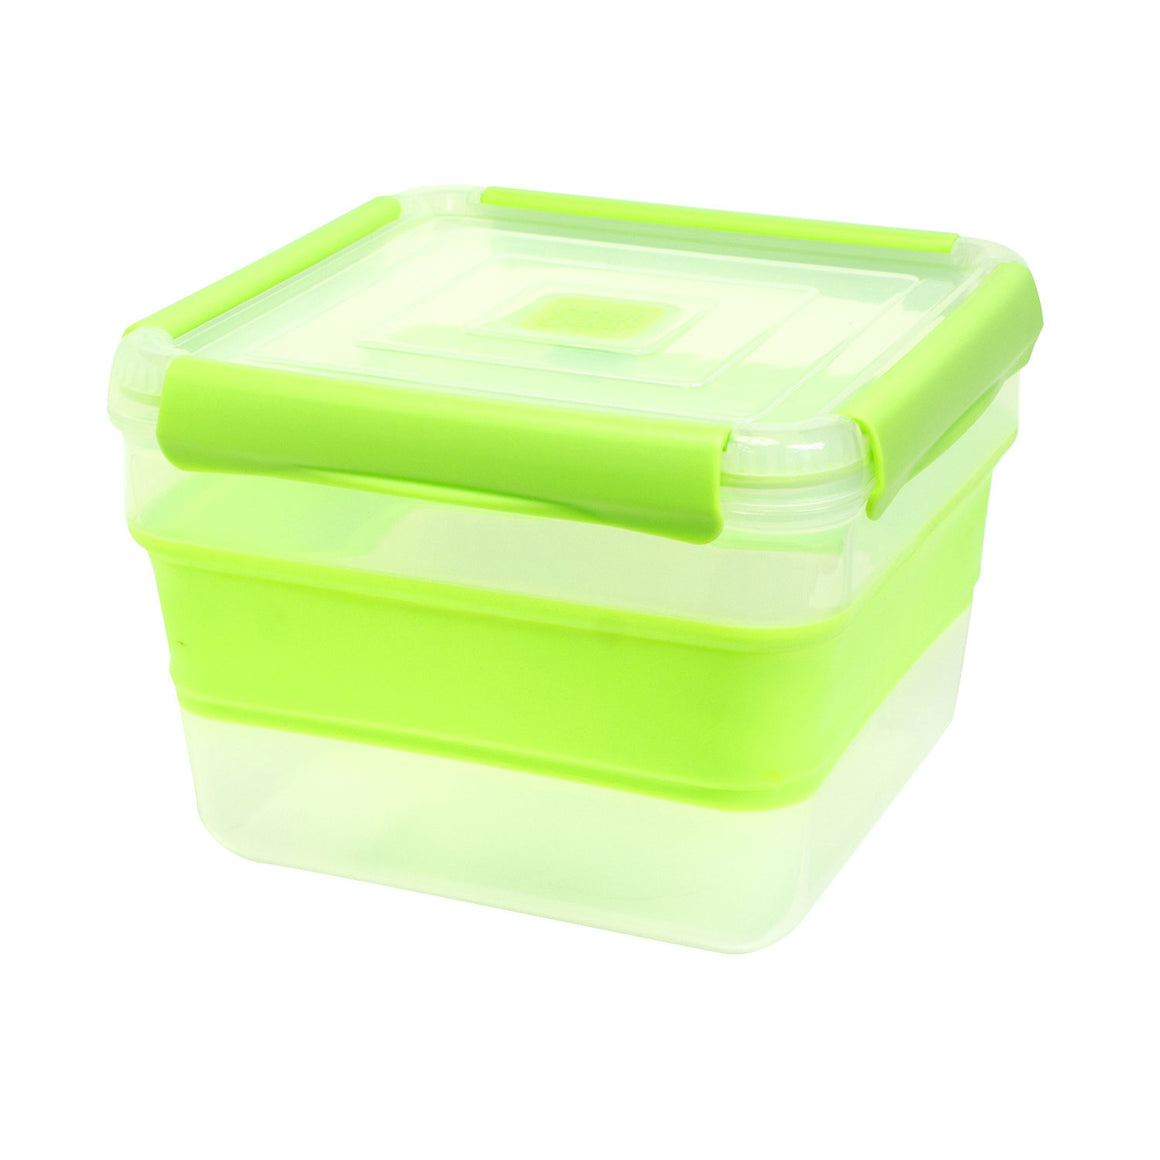 Green 14 Cup Expandable Large Square Food Container at Cool Gear Food Containers